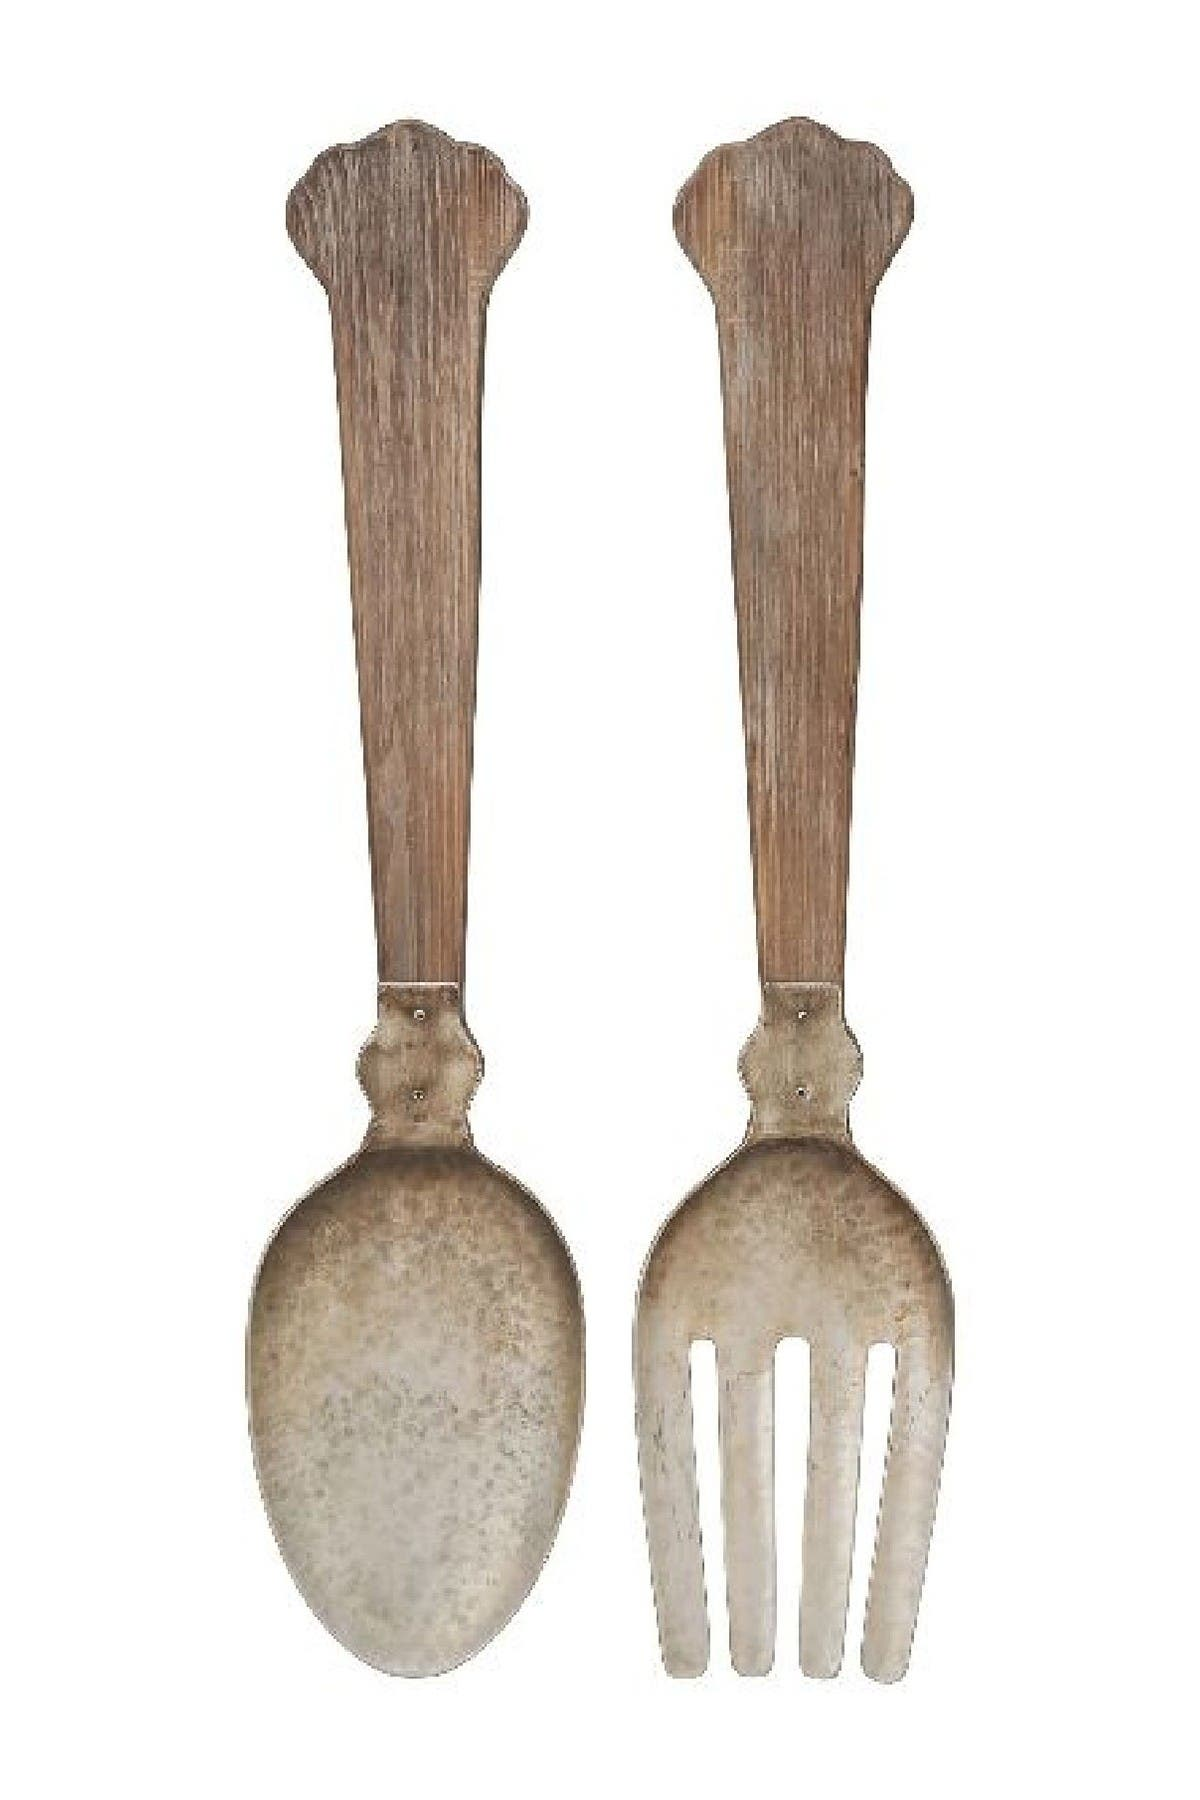 "Image of Willow Row 38"" Eclectic Wood & Metal Utensil Decor - Set of Two"